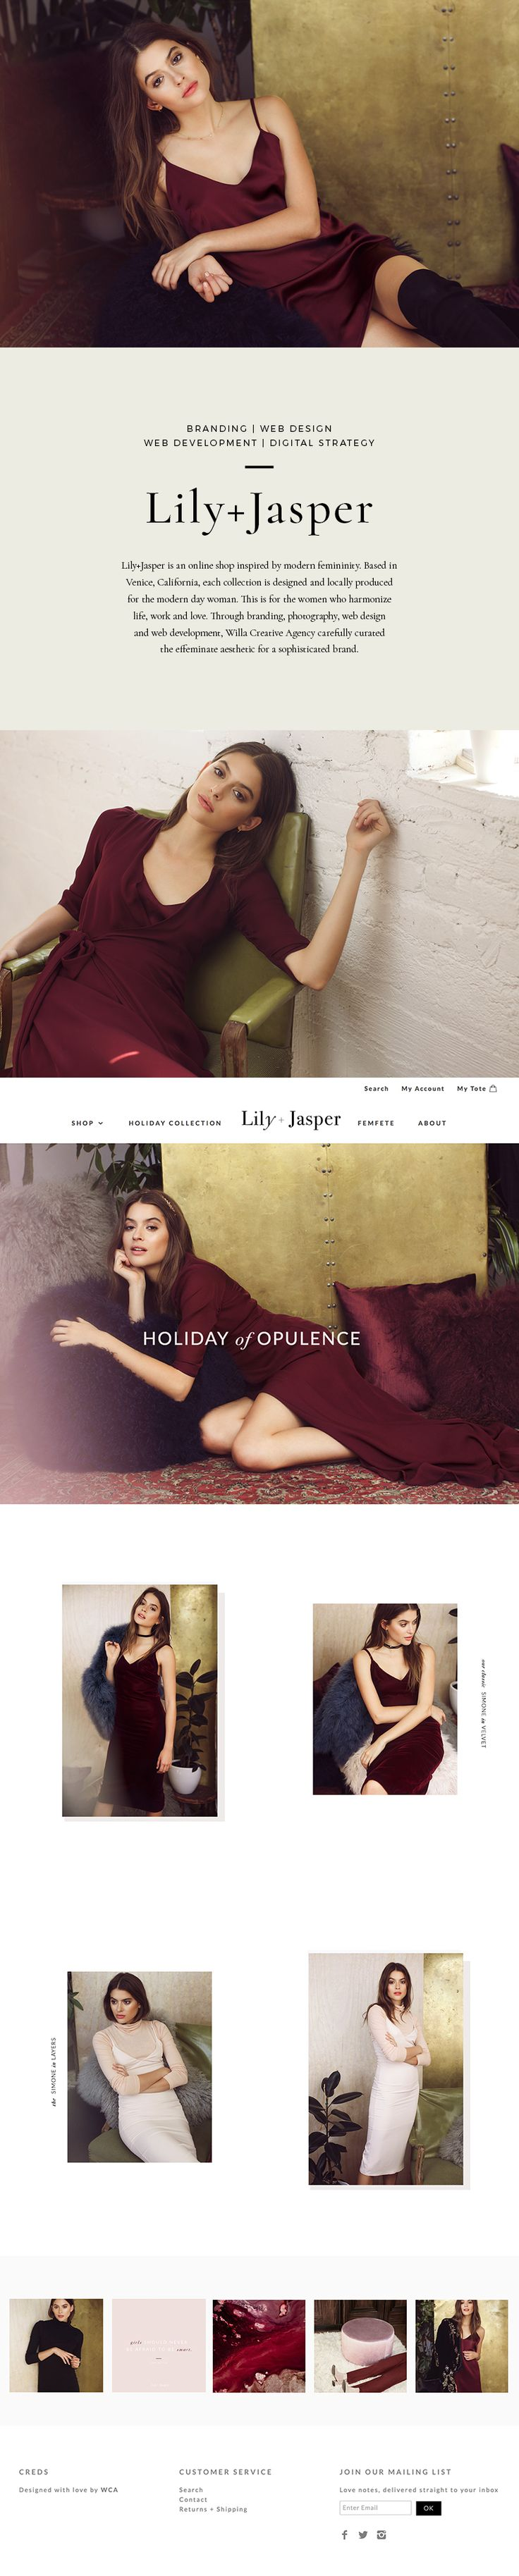 Lily+Jasper is an online shop inspired by modern femininity. Based in Venice, California, each collection is designed and locally produced for the modern day woman. This is for the women who harmonize life, work and love. Through branding, photography, web design and web development, Willa Creative Agency carefully curated the effeminate aesthetic for a sophisticated brand. | willaca.com